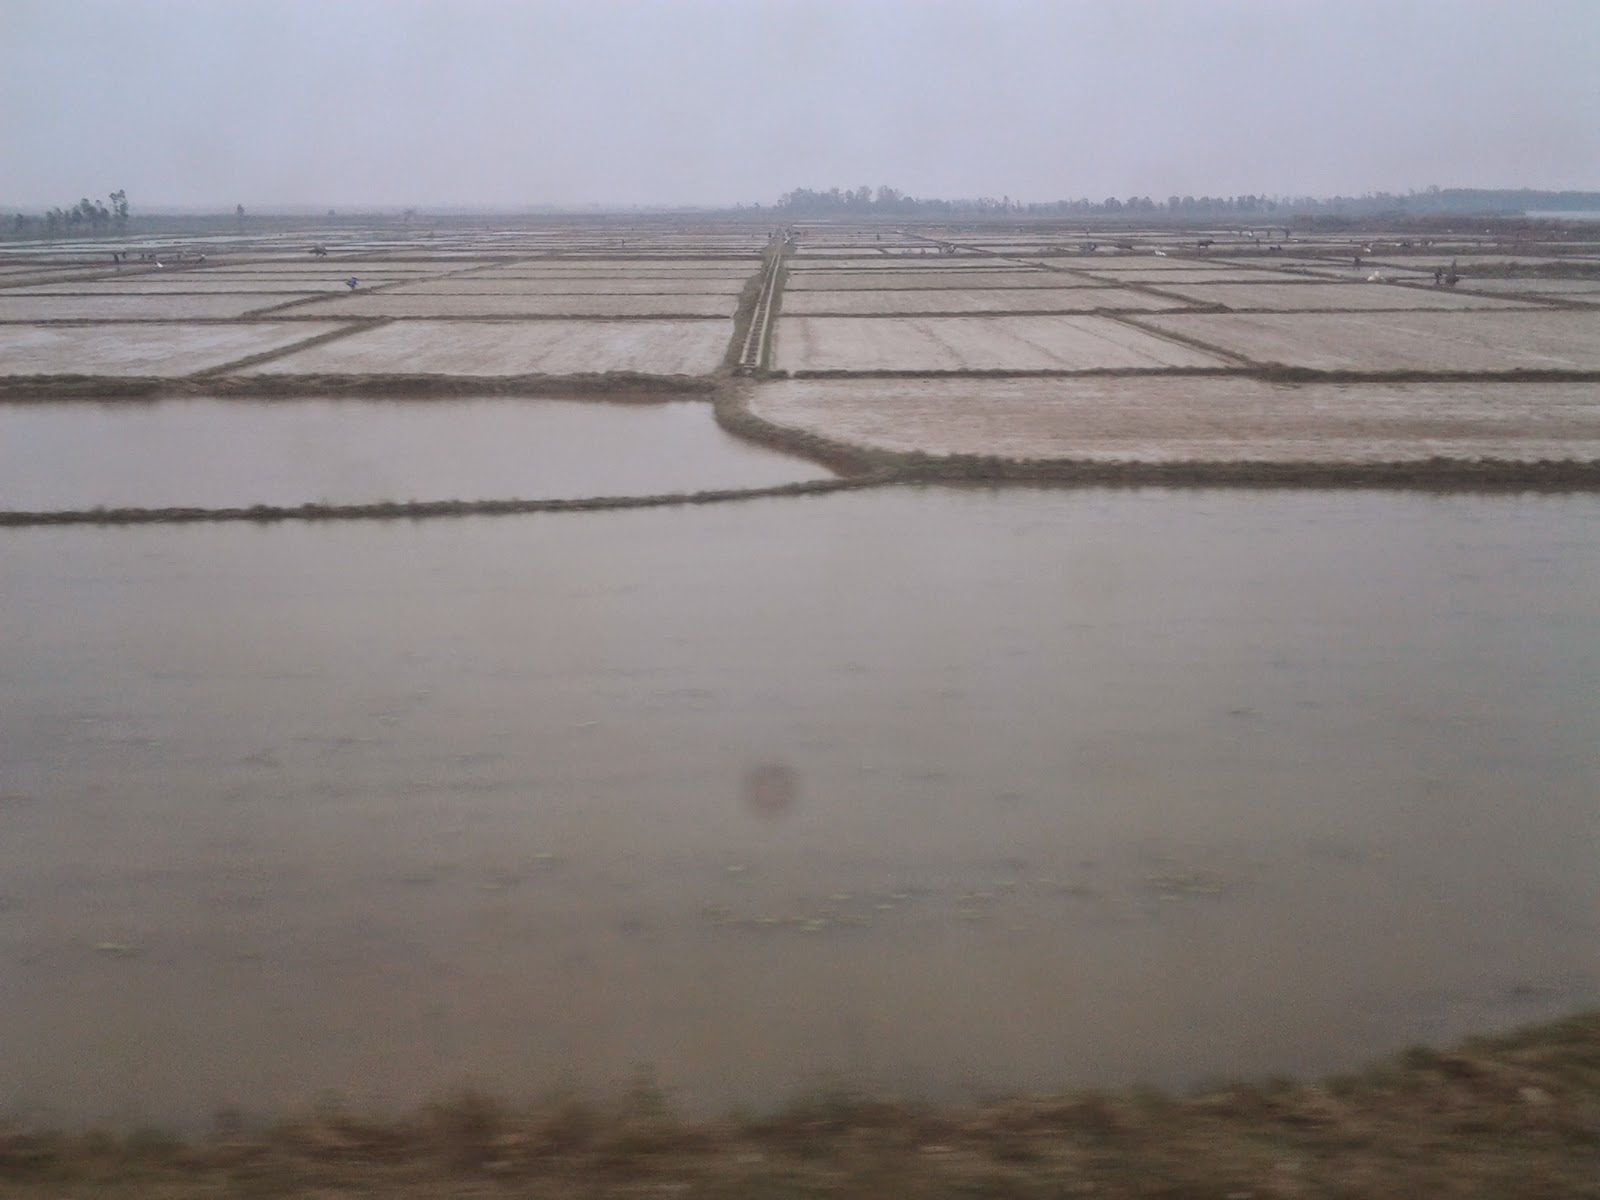 Vietnam holiday through the train window: paddy fields